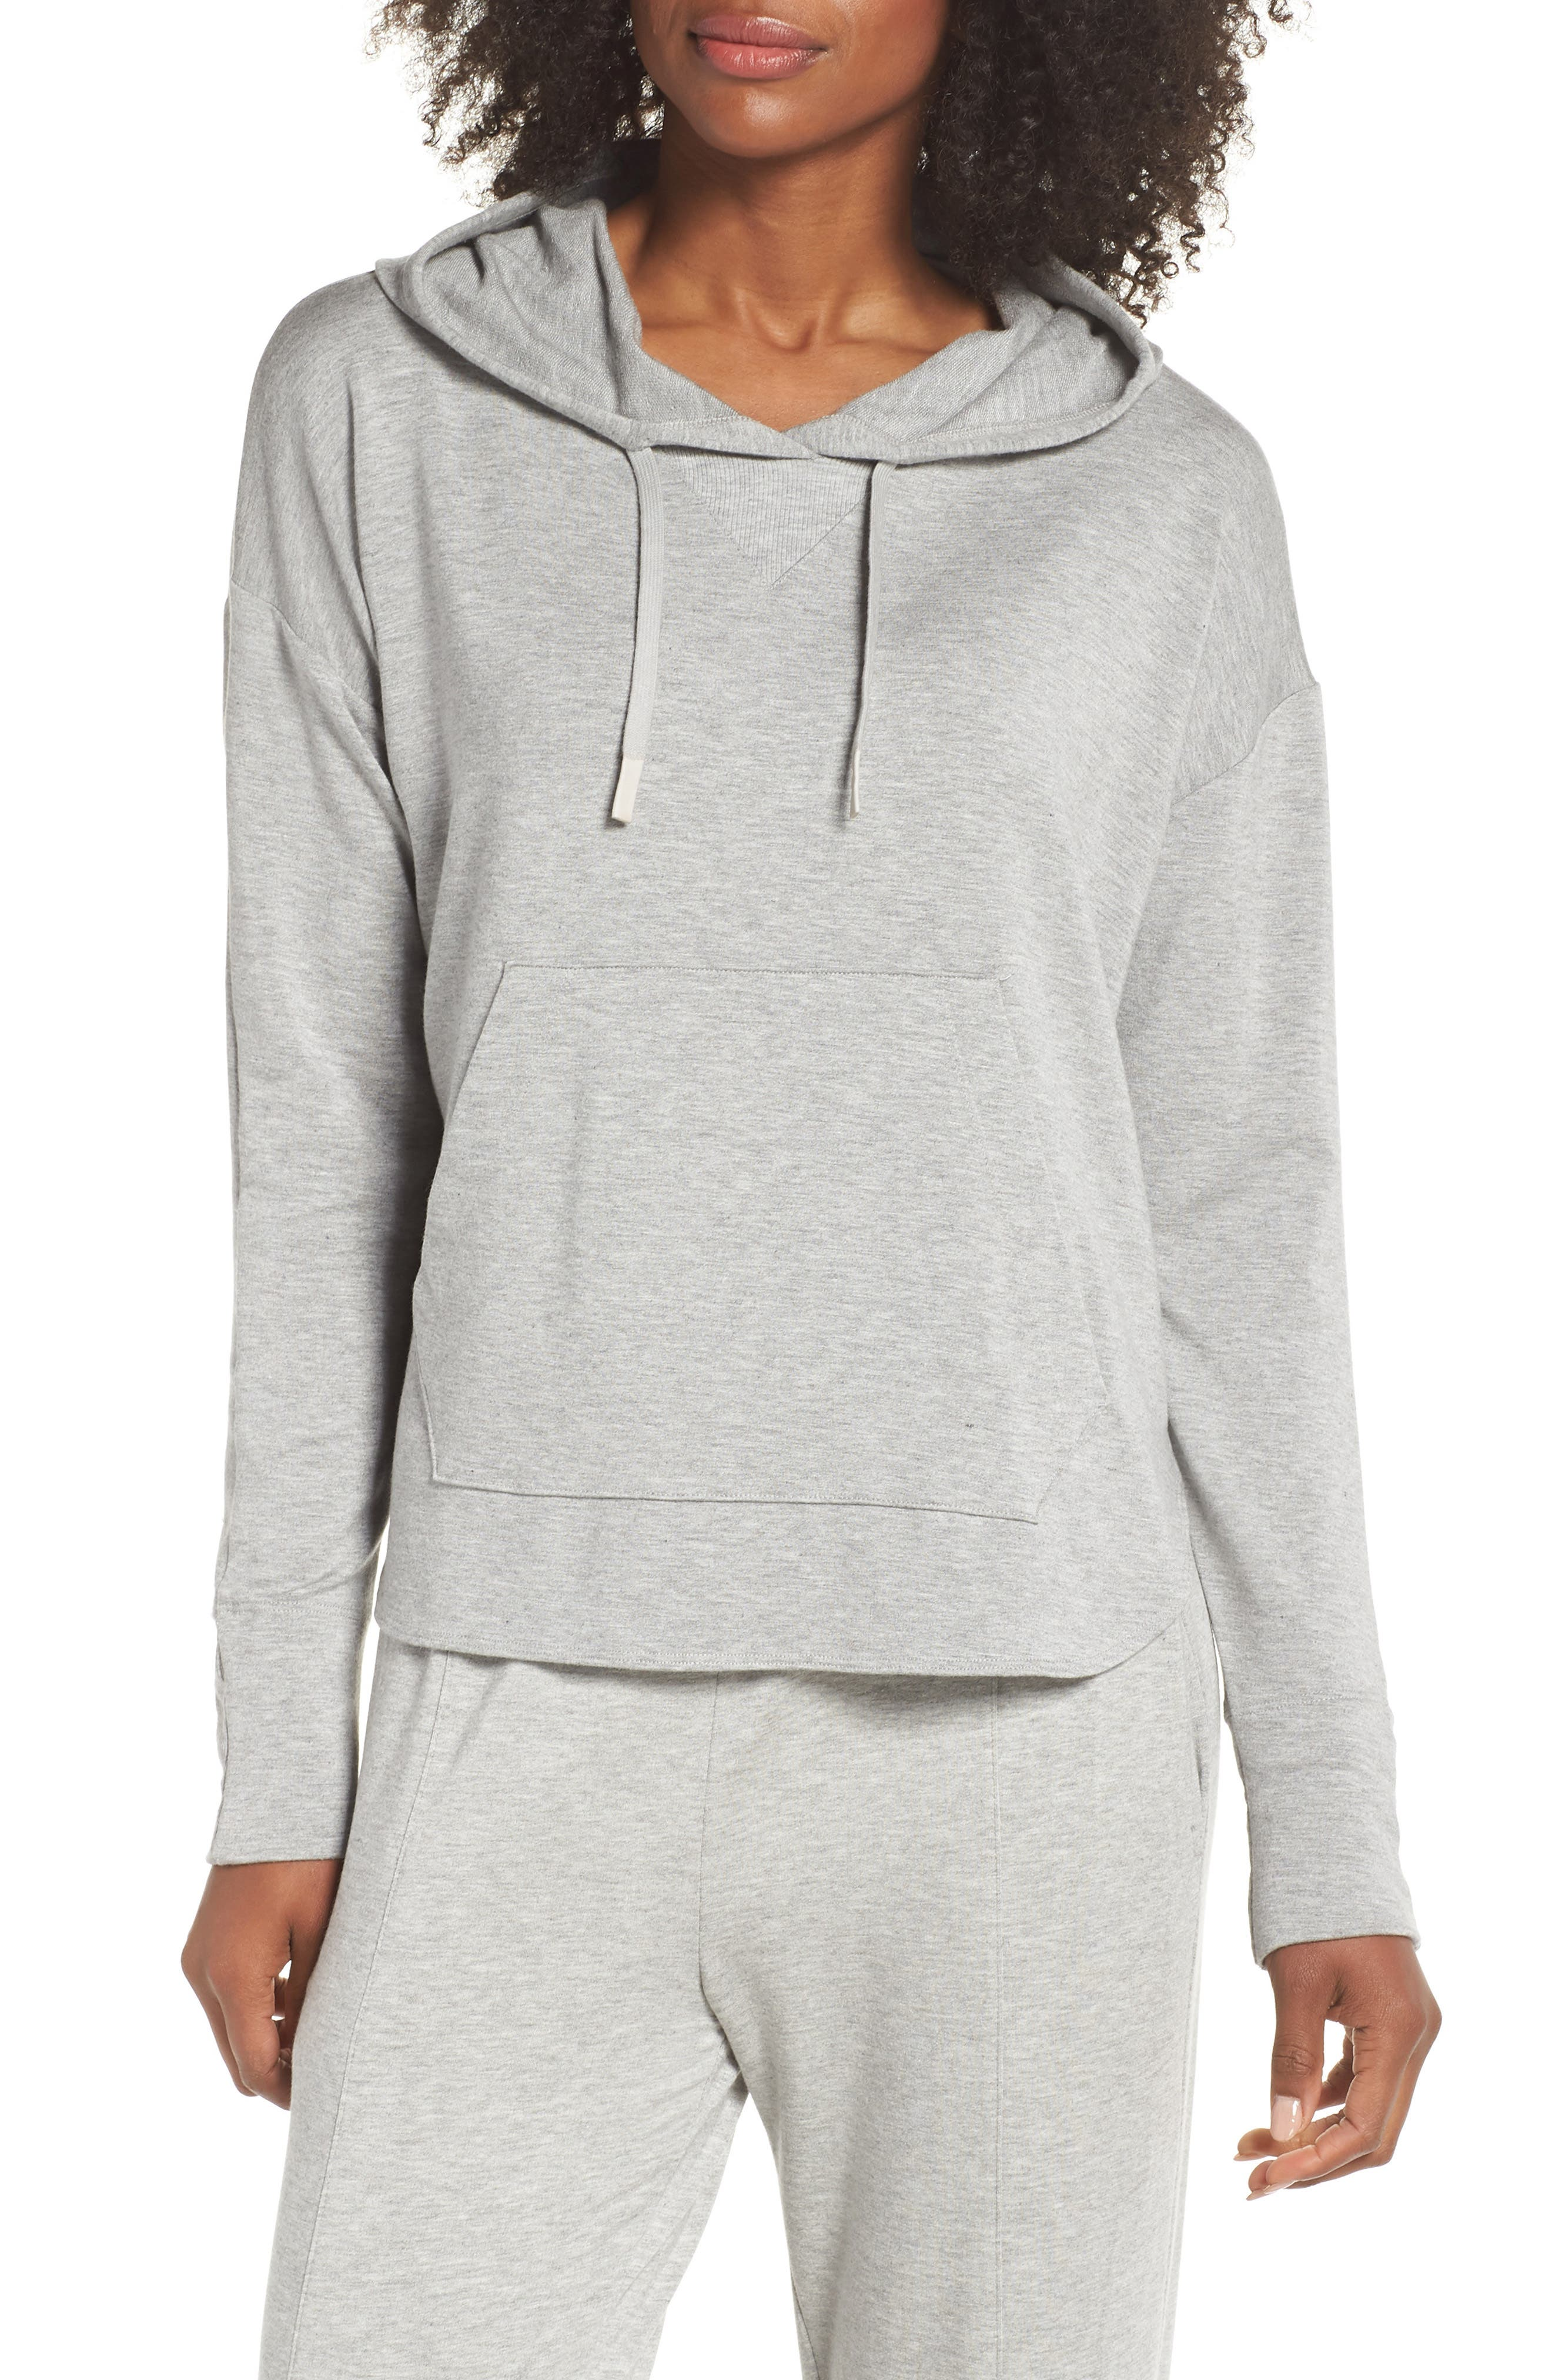 Pacific Hoodie,                         Main,                         color, LIGHT HEATHER GREY